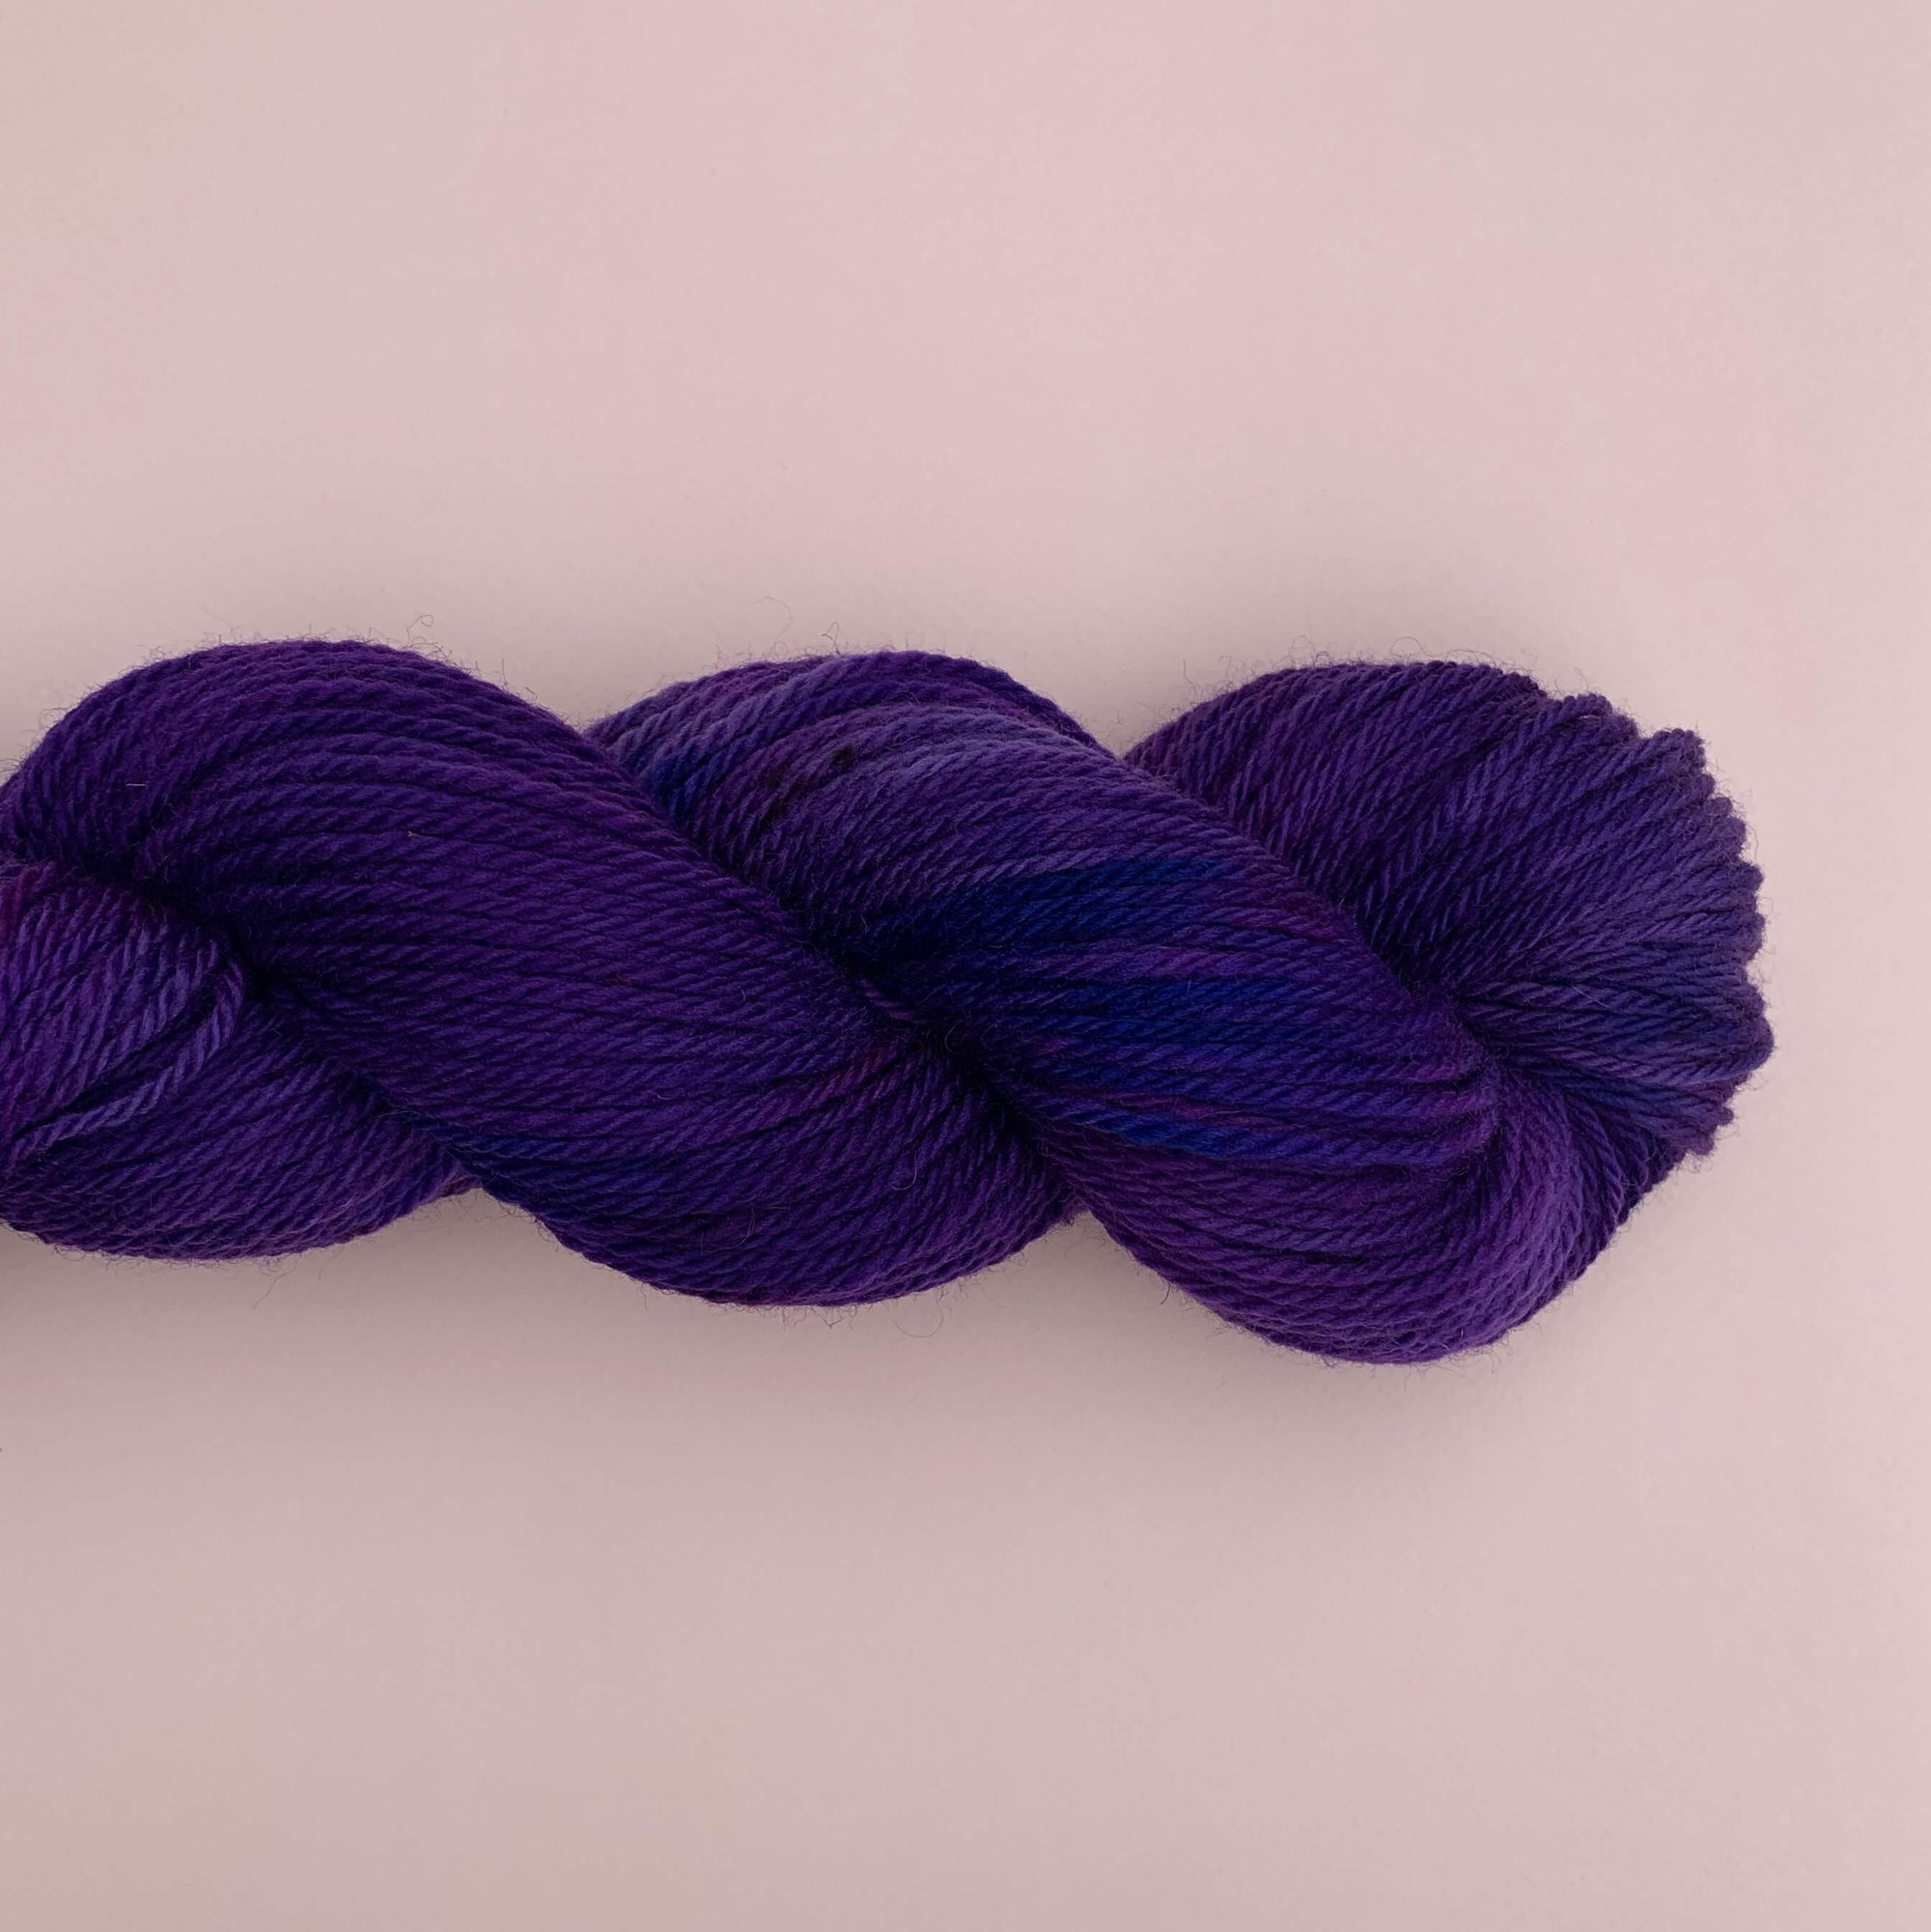 Corriedale Worsted - Chambord